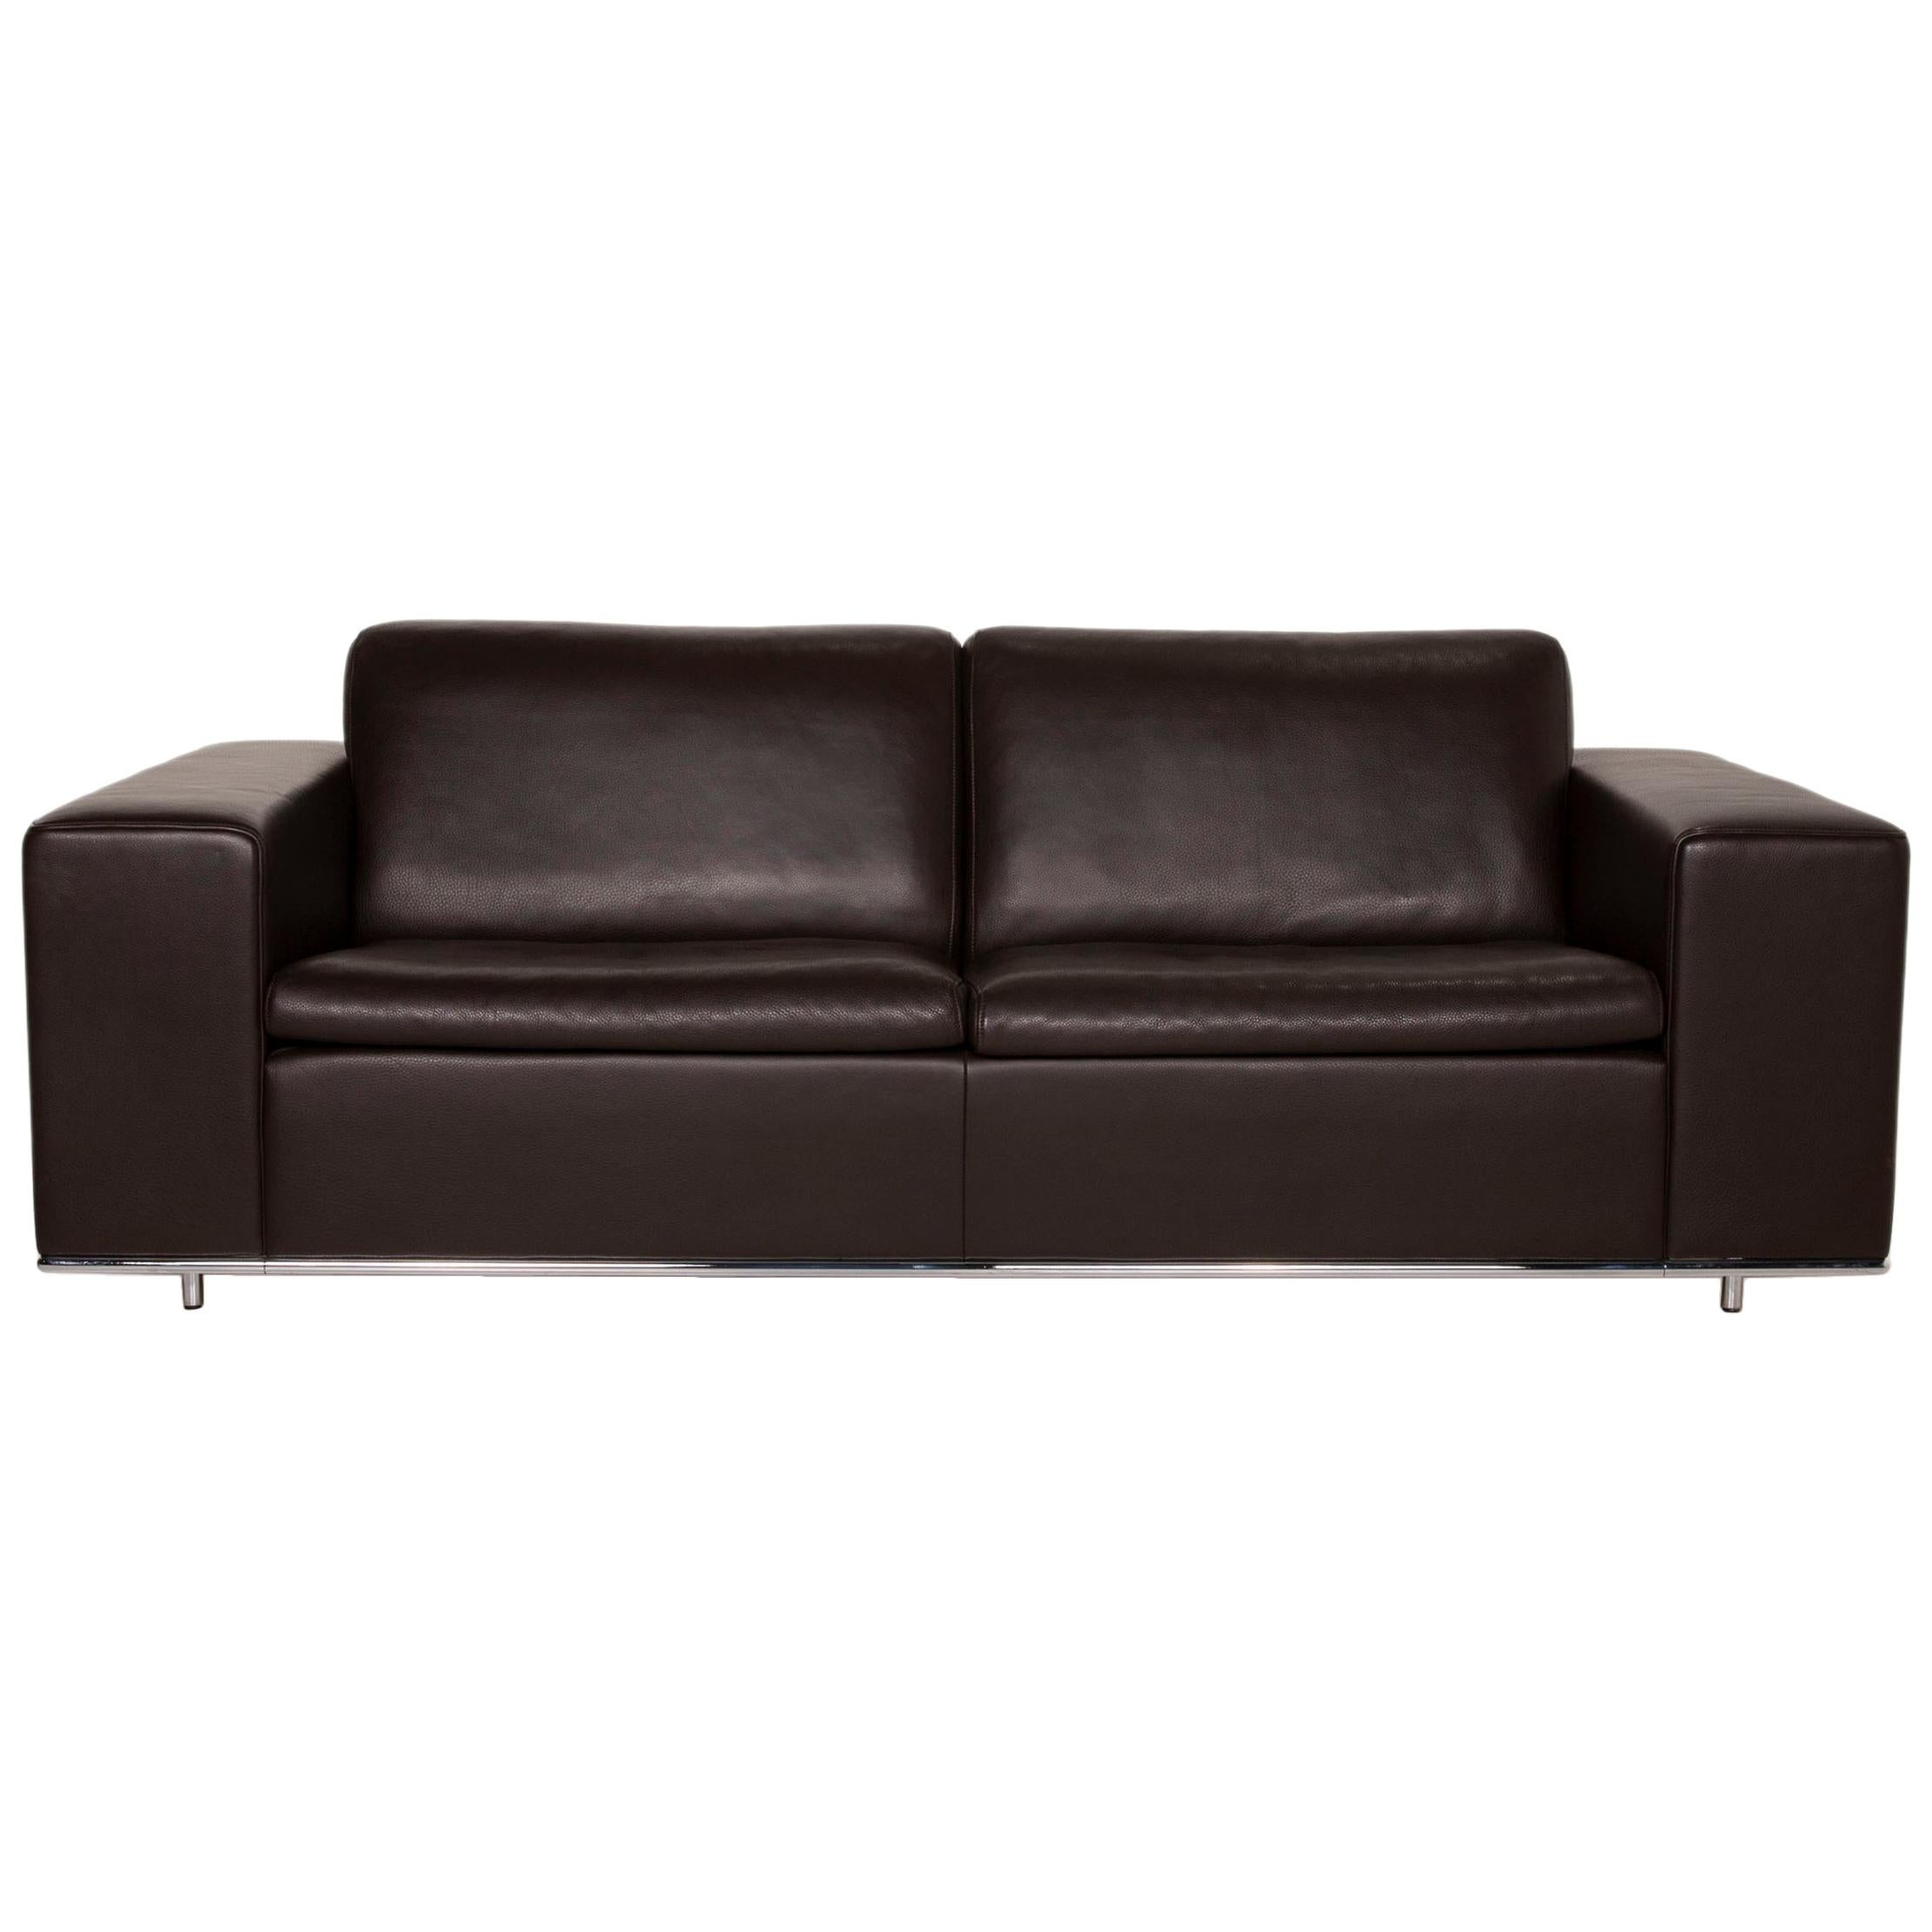 De Sede Leather Sofa Brown Two-Seater